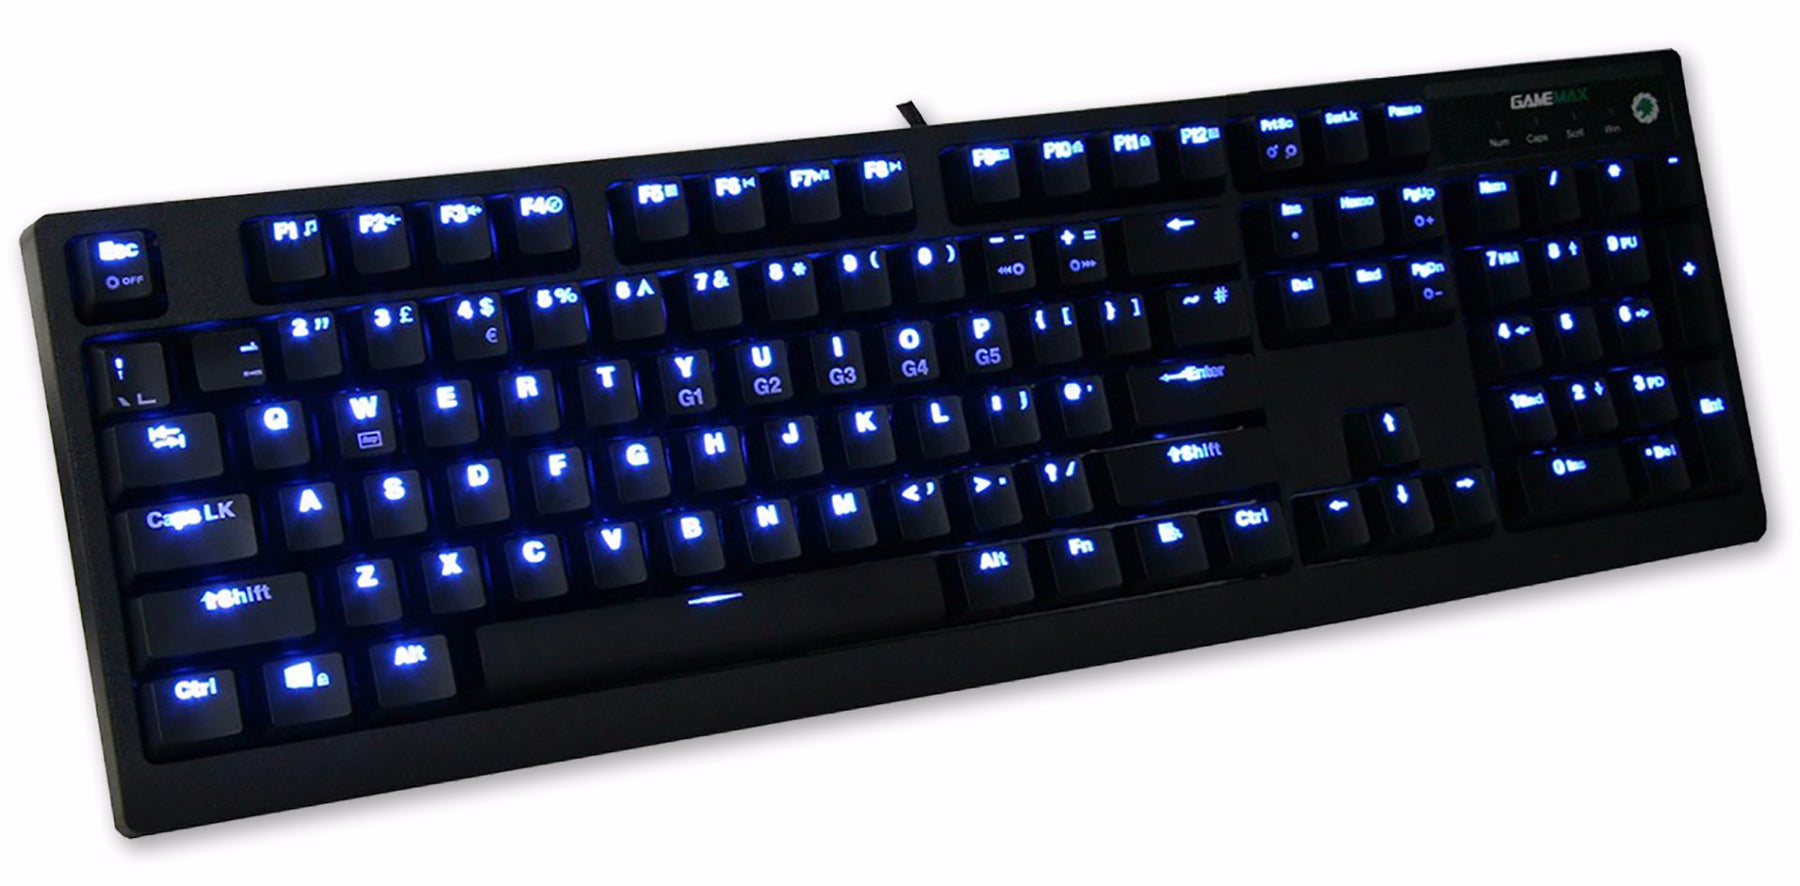 GAMEMAX MK1 Mechanical Gaming Keyboard with Blue LED - KB-MECH/MK1